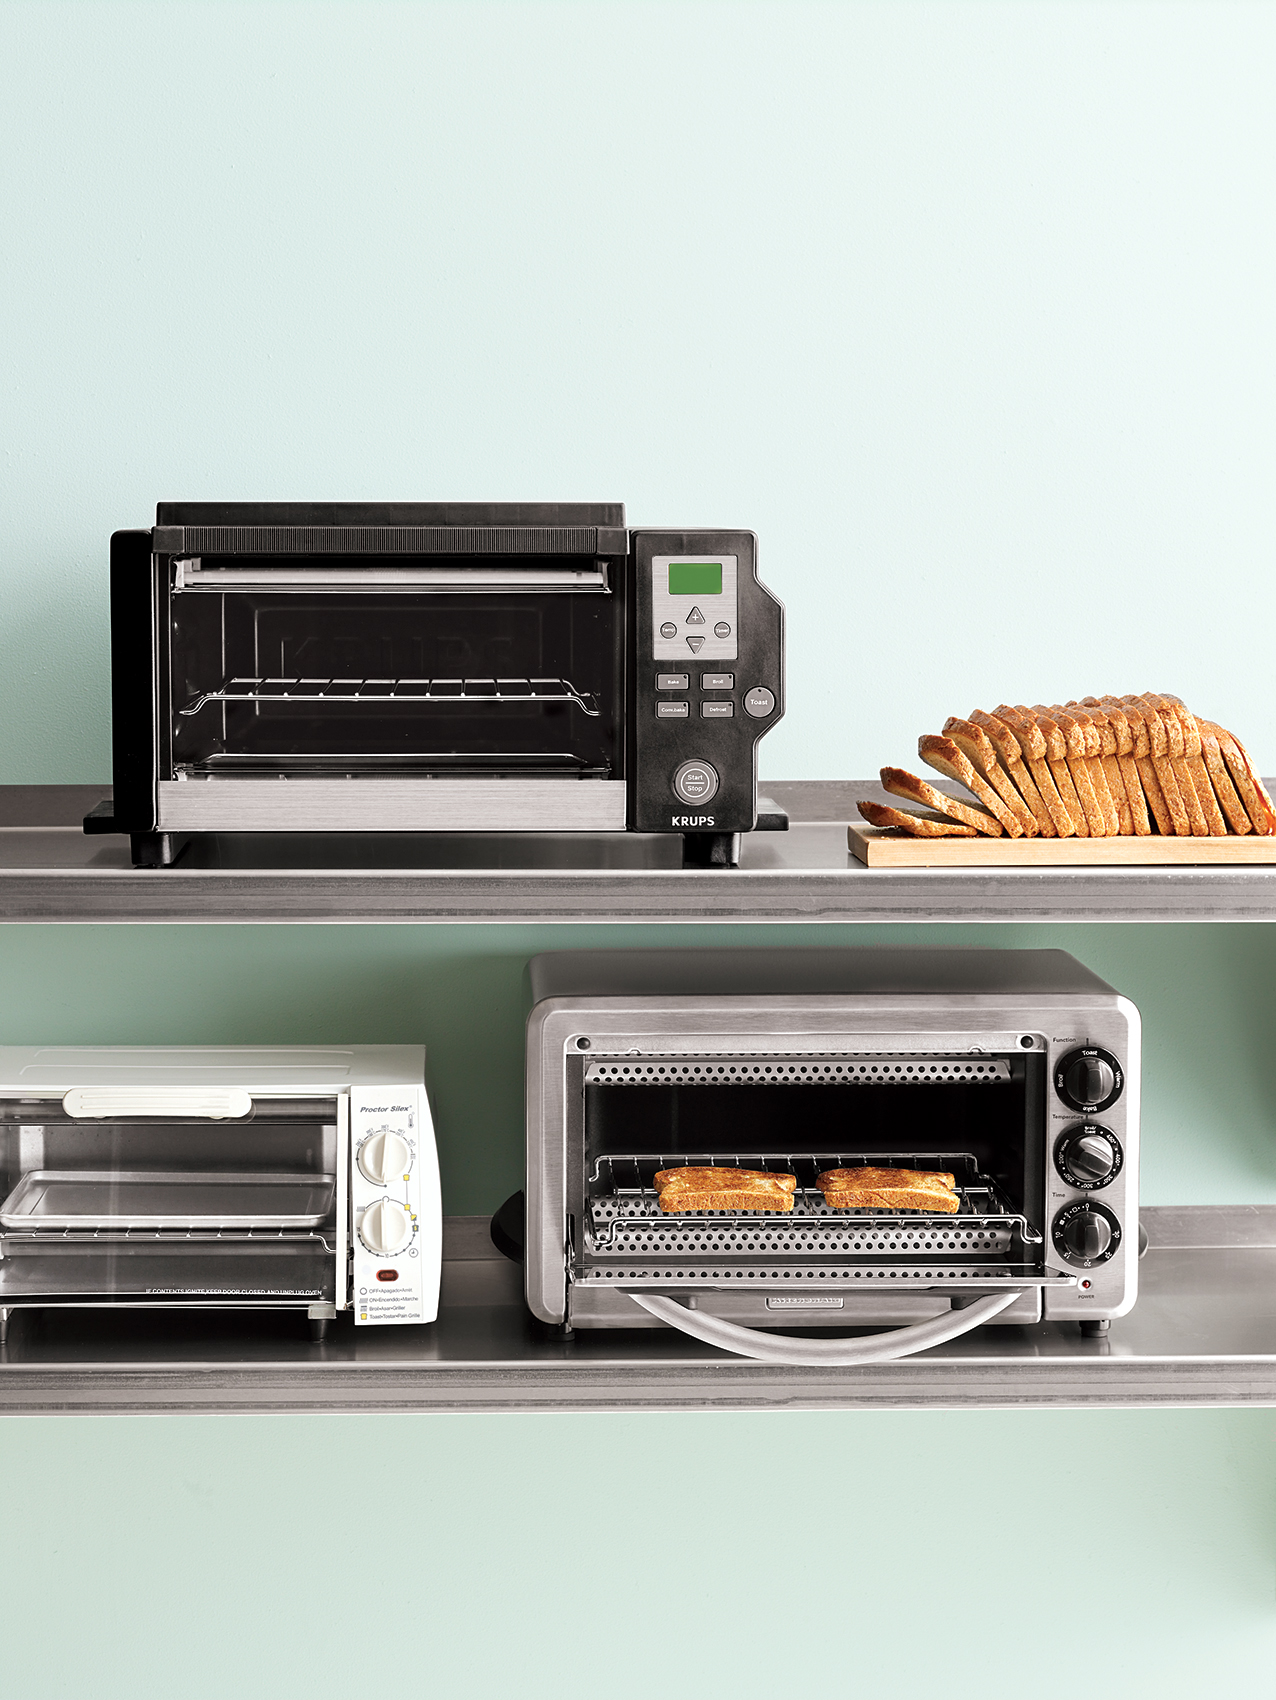 Toaster ovens and bread